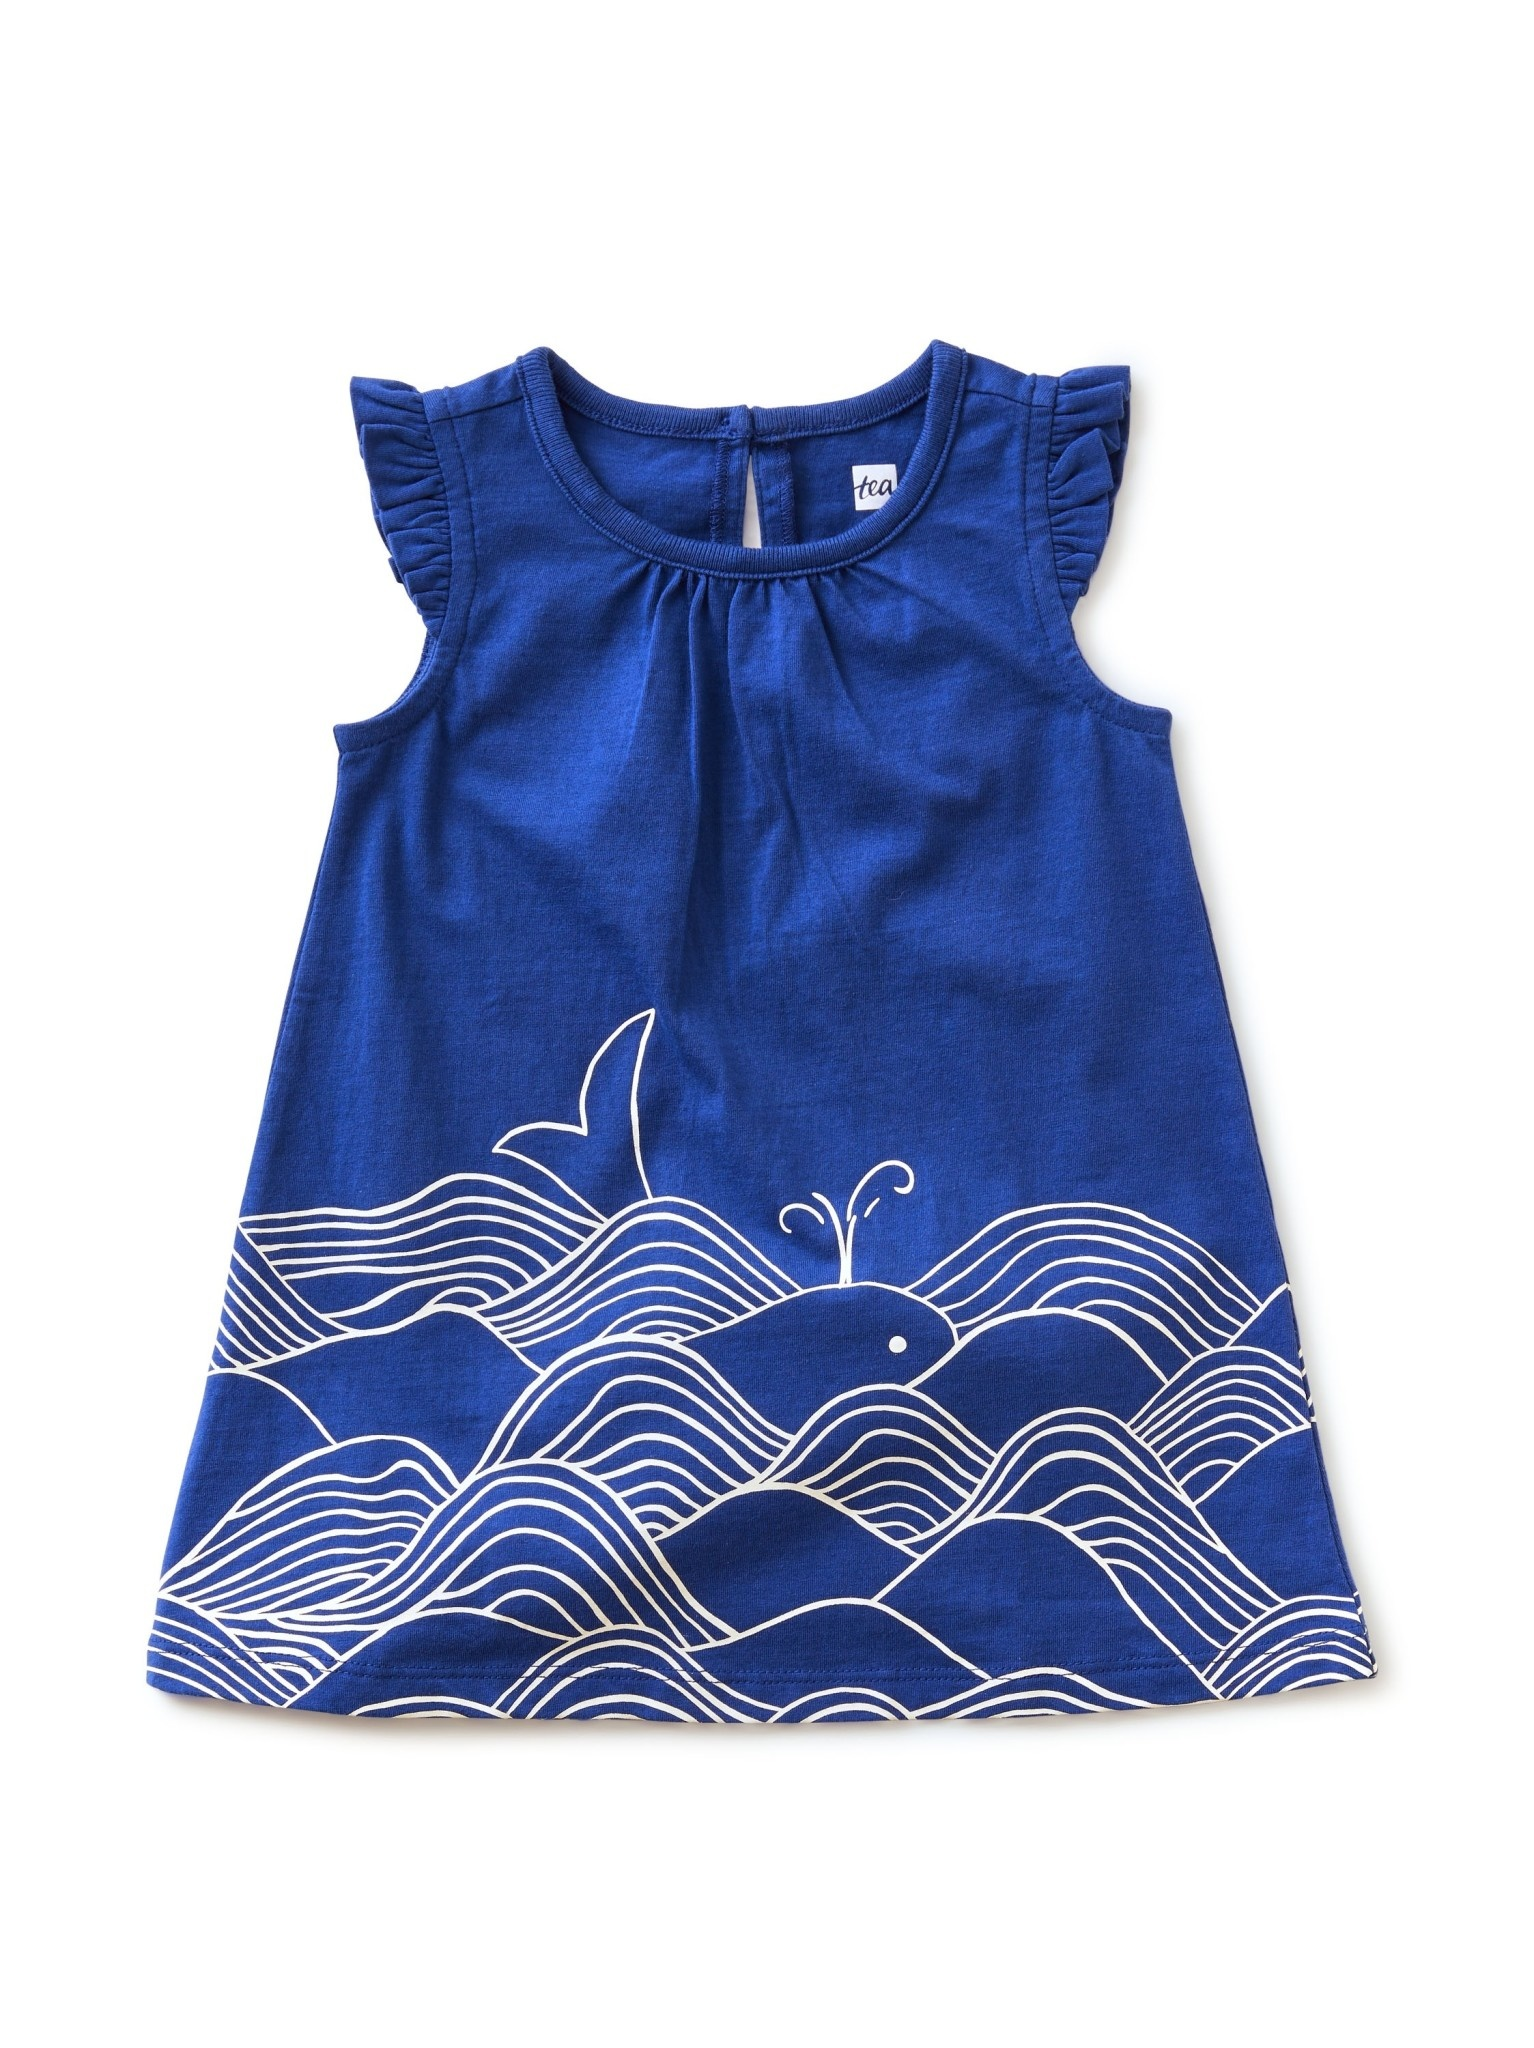 Tea Collection Astral In the Wind Ruffle Baby